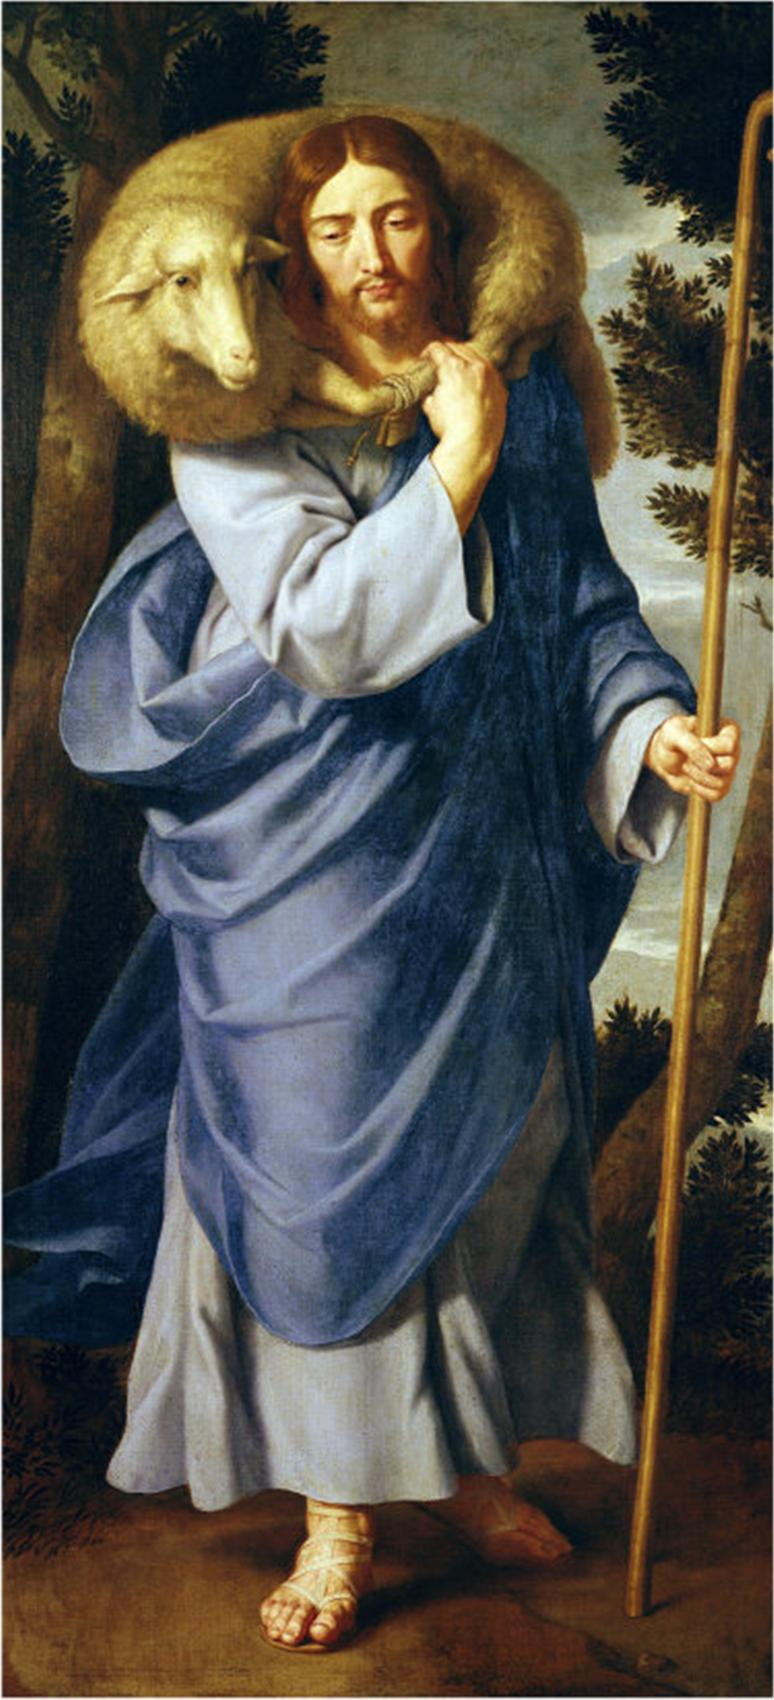 Phillipe de Champaigne